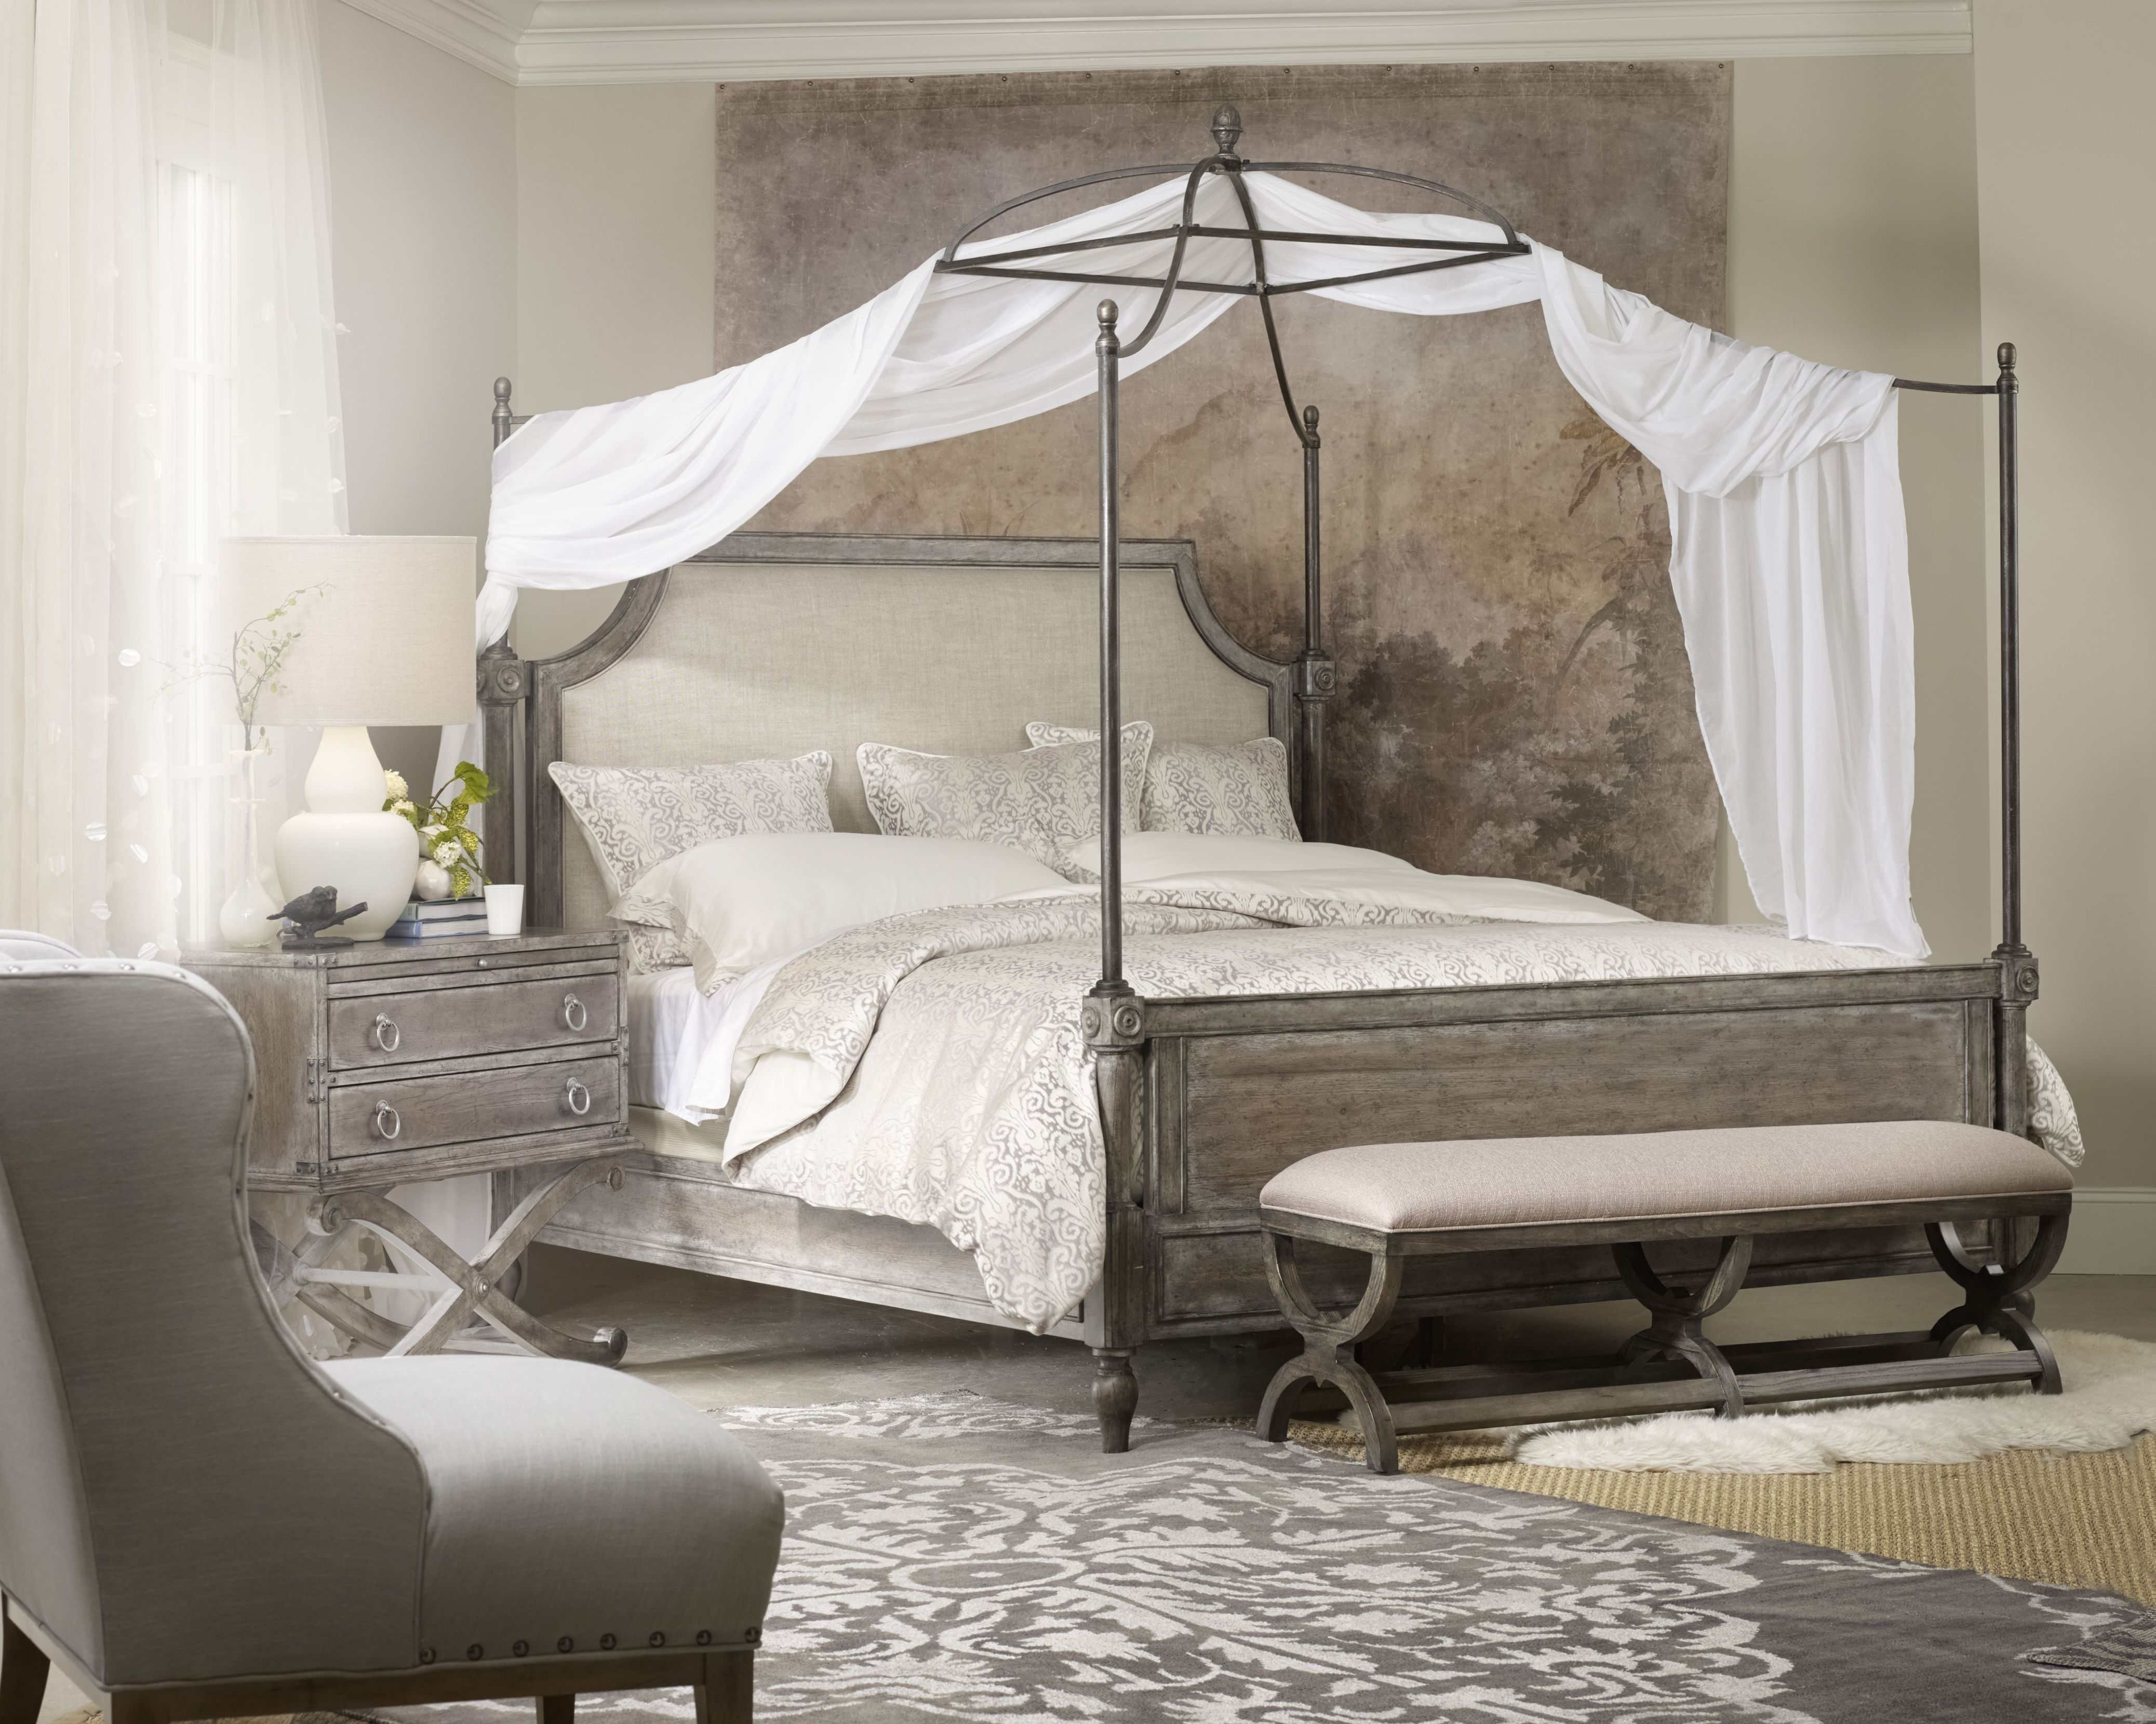 "Vintage Canopy Beds true vintage"" canopy bed from hooker furniture. 